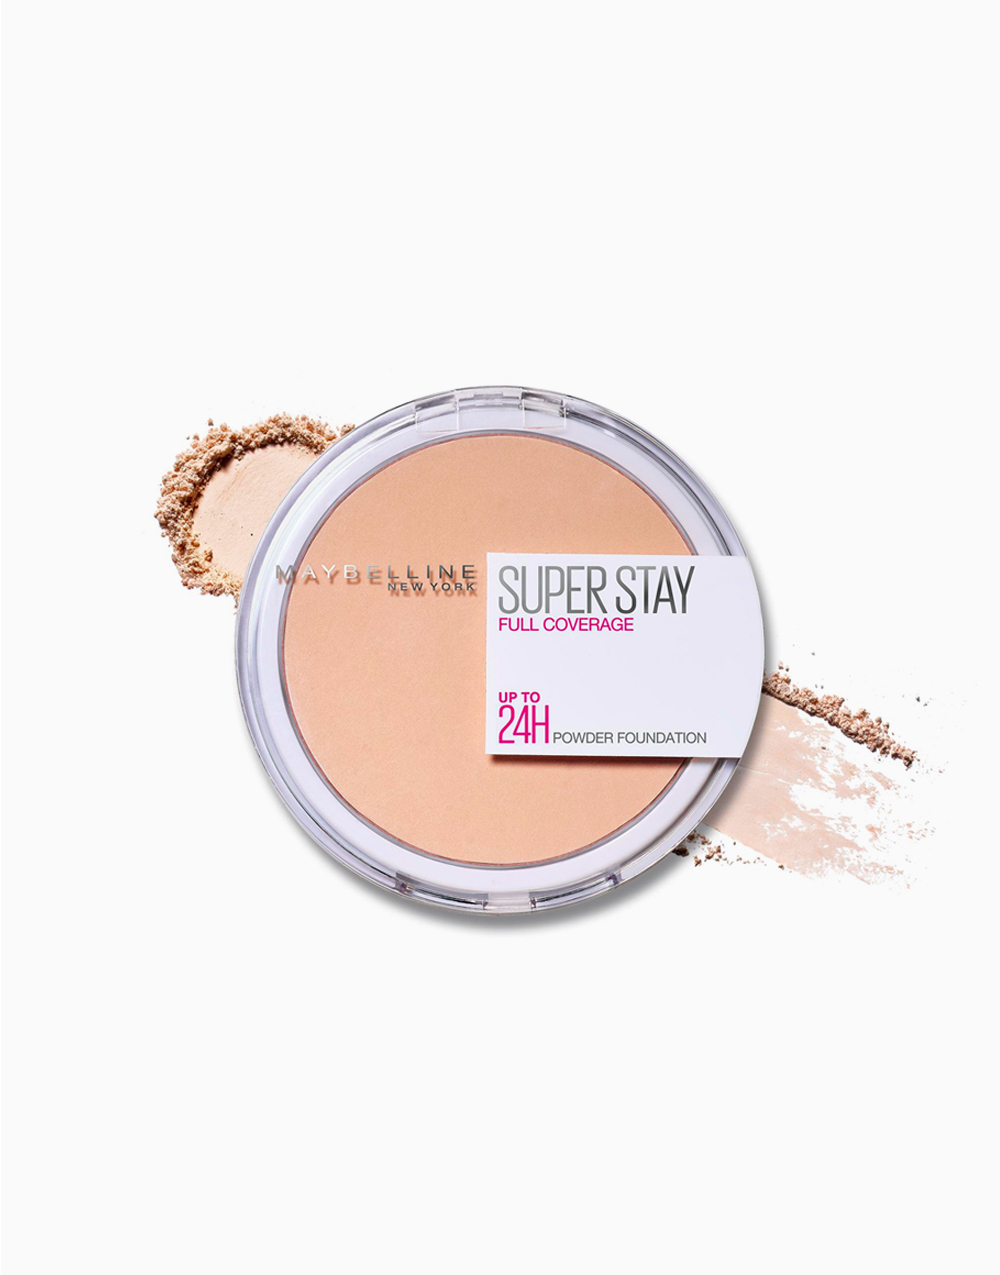 SuperStay 16HR Full Coverage Powder Foundation by Maybelline | 115 Ivory